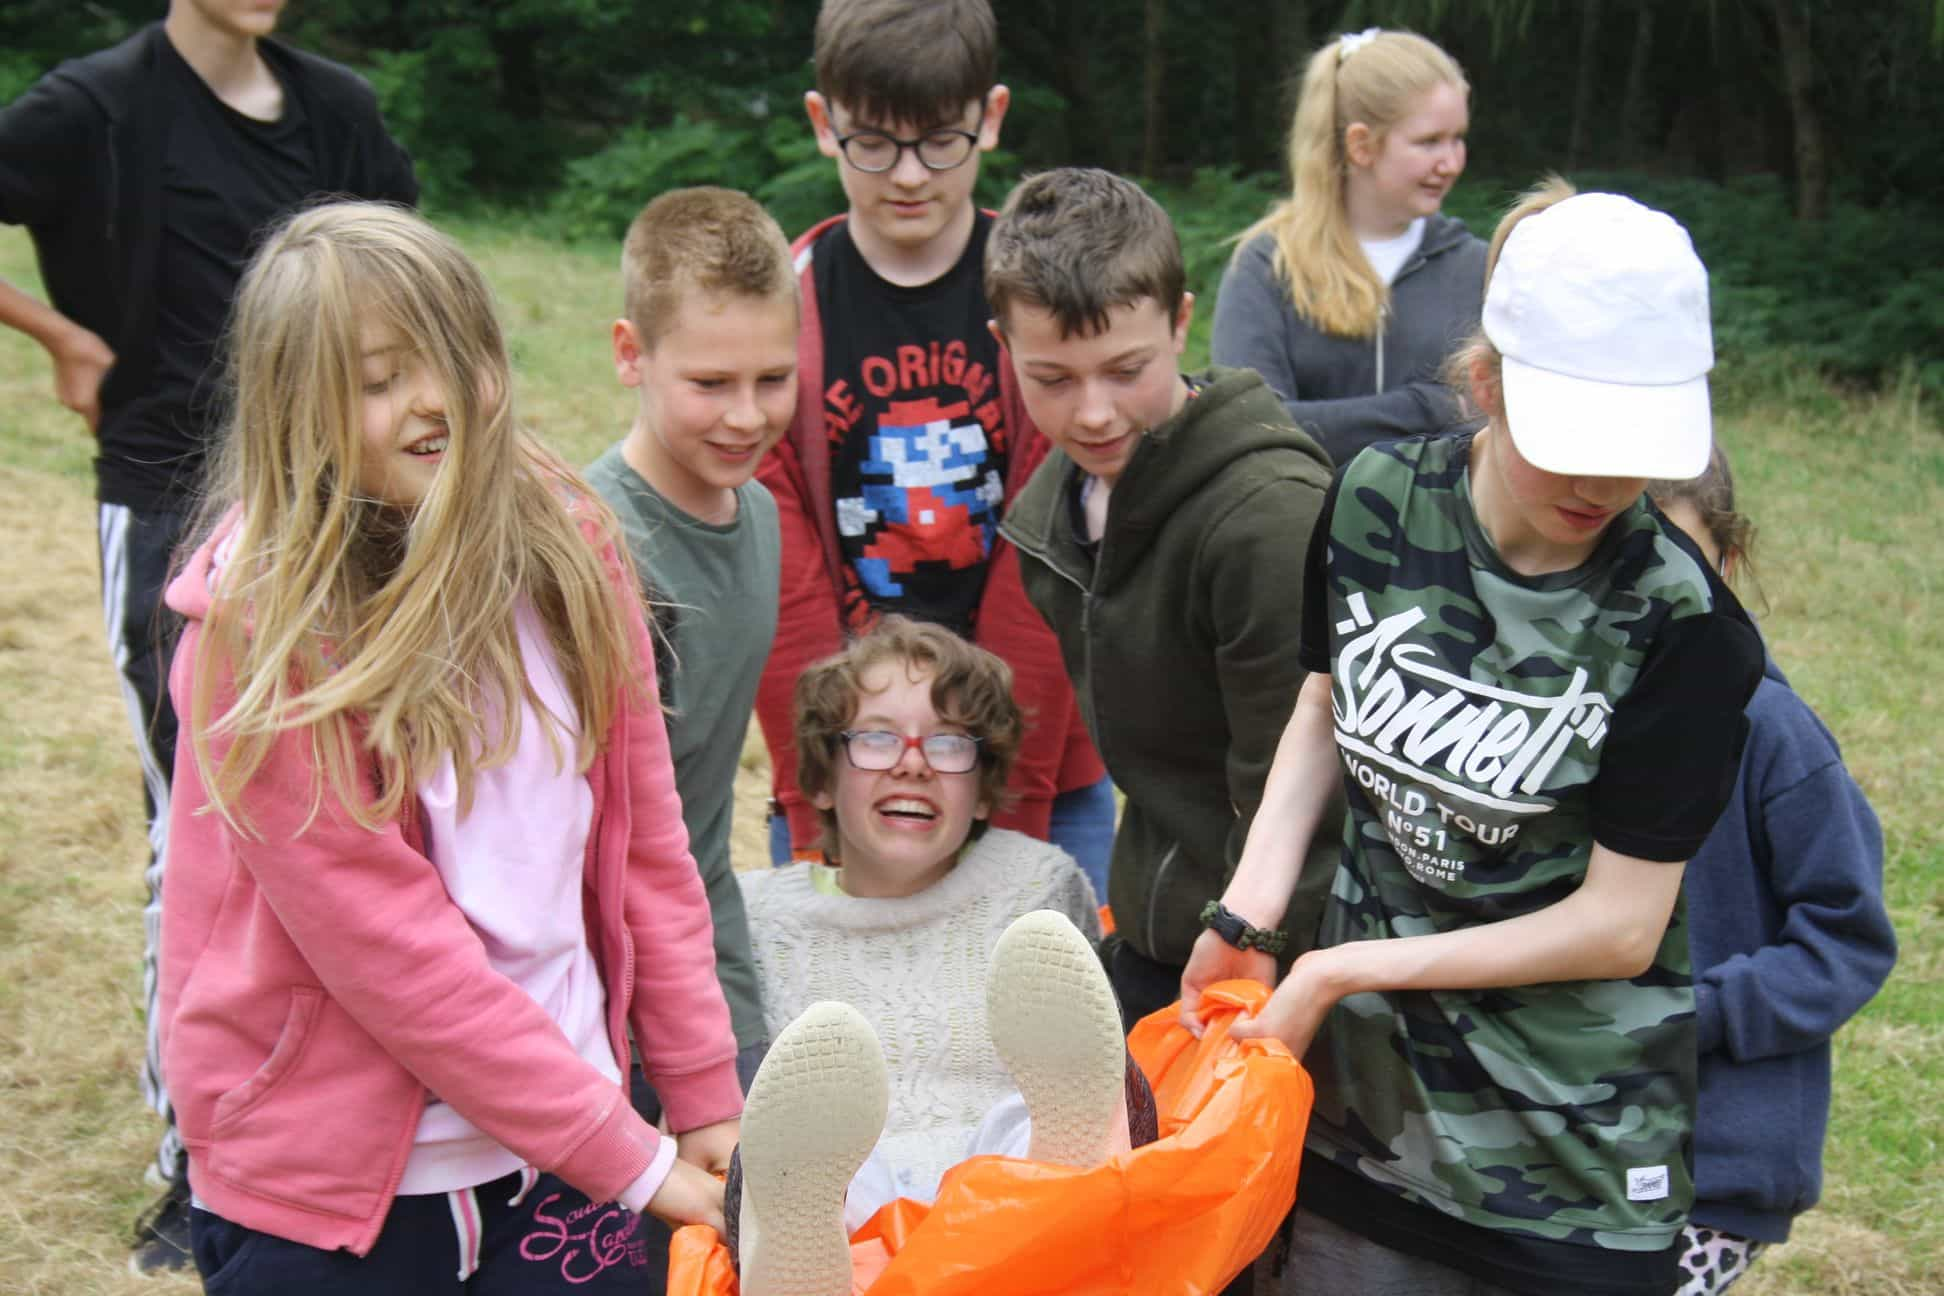 LVS Oxford student Leila is carried on a makeshift stretcher by classmates in a survival exercise